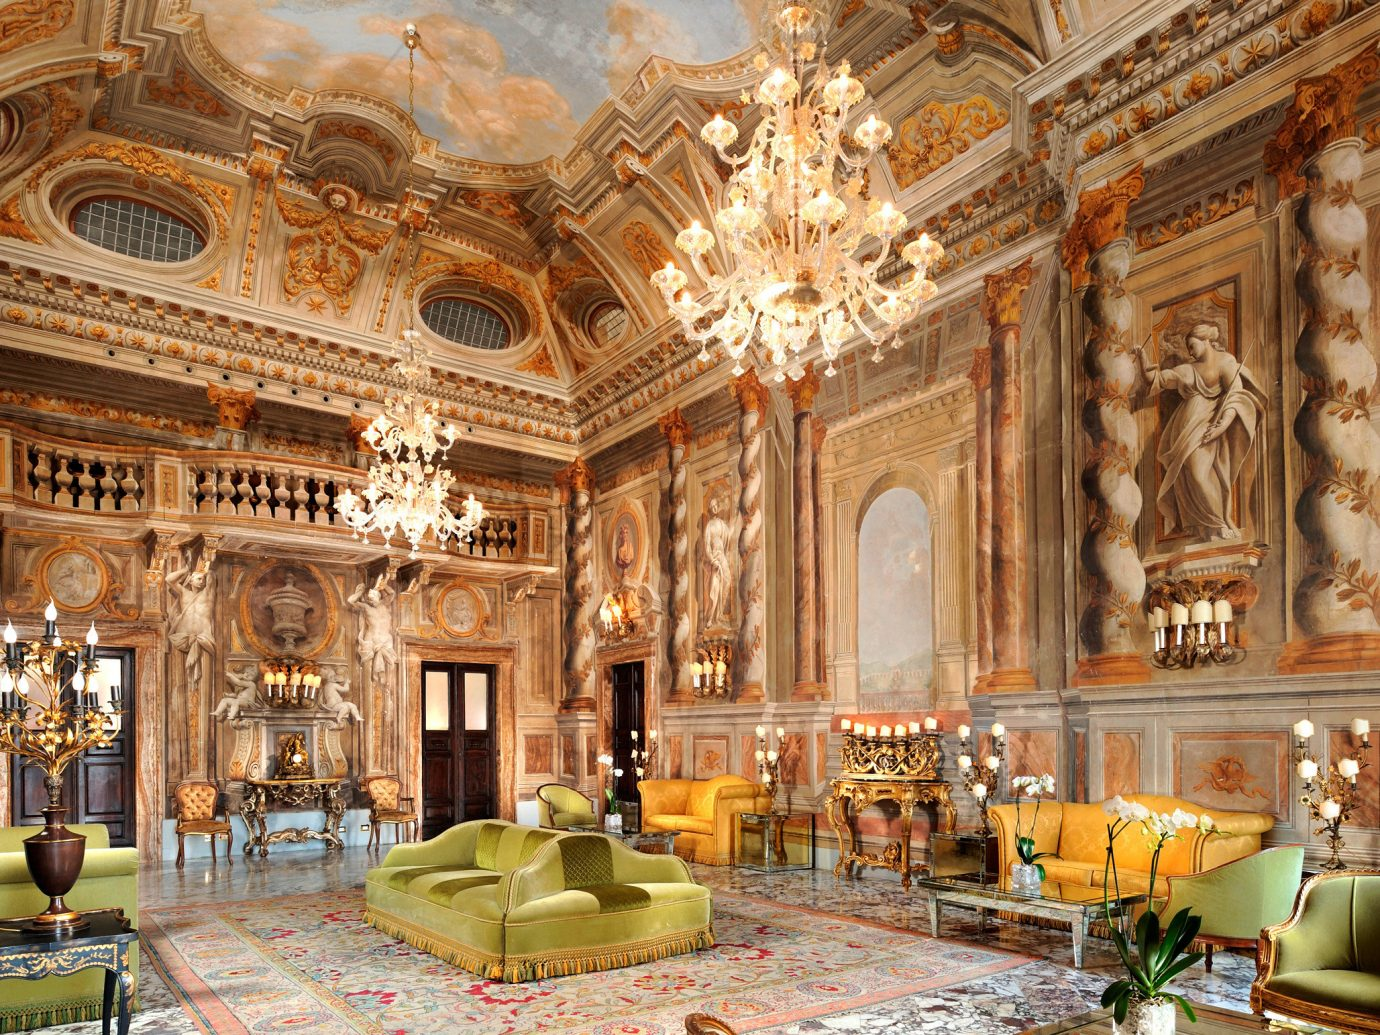 Classic Elegant Historic Italy Lobby Lounge Luxury Romance Romantic Trip Ideas indoor building palace estate ballroom interior design ancient history place of worship synagogue altar